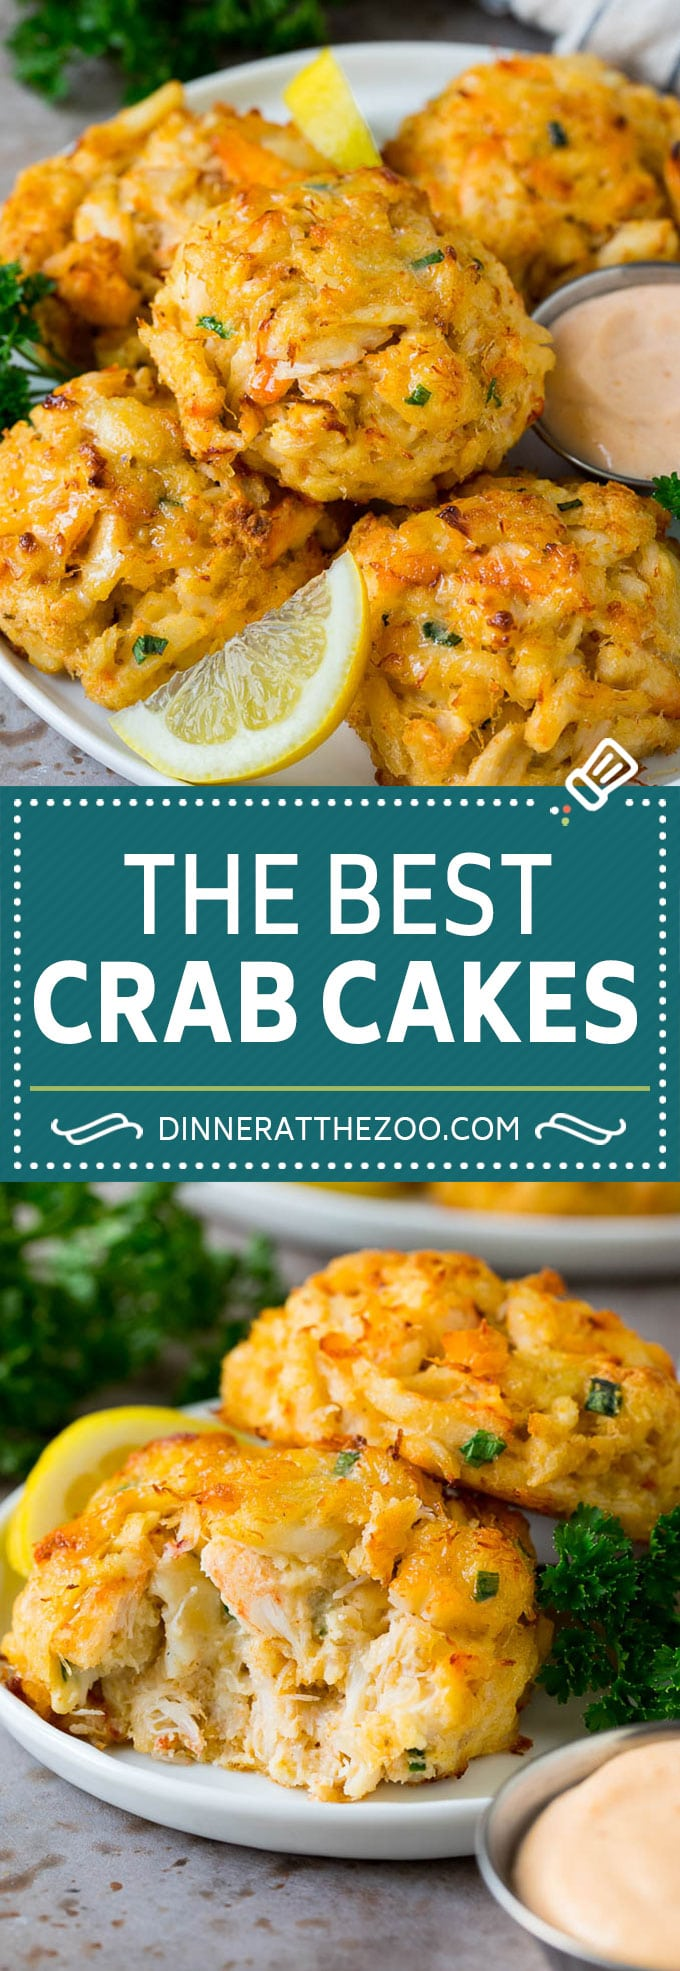 These Maryland crab cakes are fresh crab combined with seasonings and cracker crumbs, then baked to make an easy yet elegant appetizer or main course.